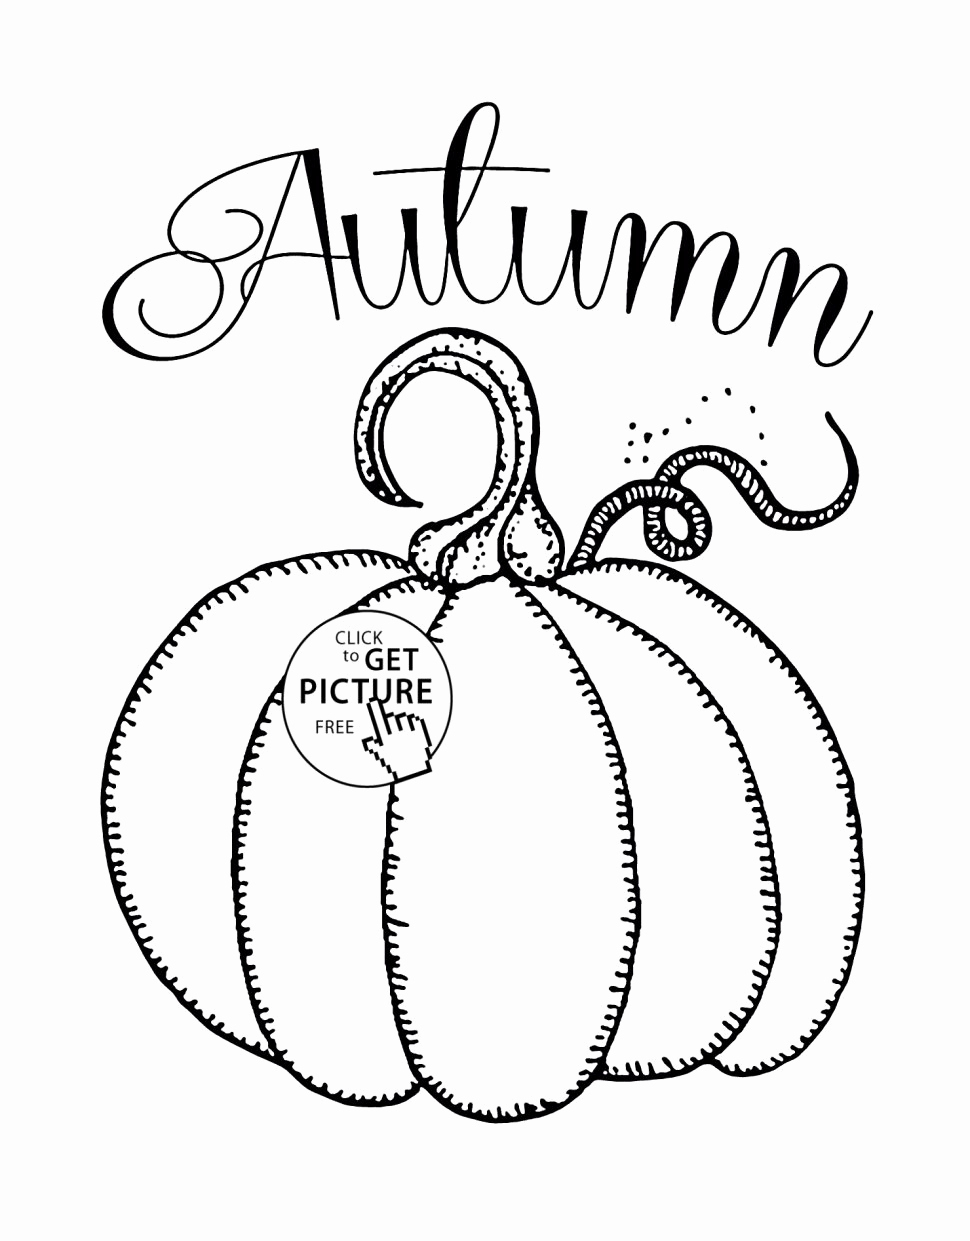 all about me coloring pages Collection-Disney Coloring Pages Engaging Fall Coloring Pages Printable 26 Kids New 0d Page for 6-d